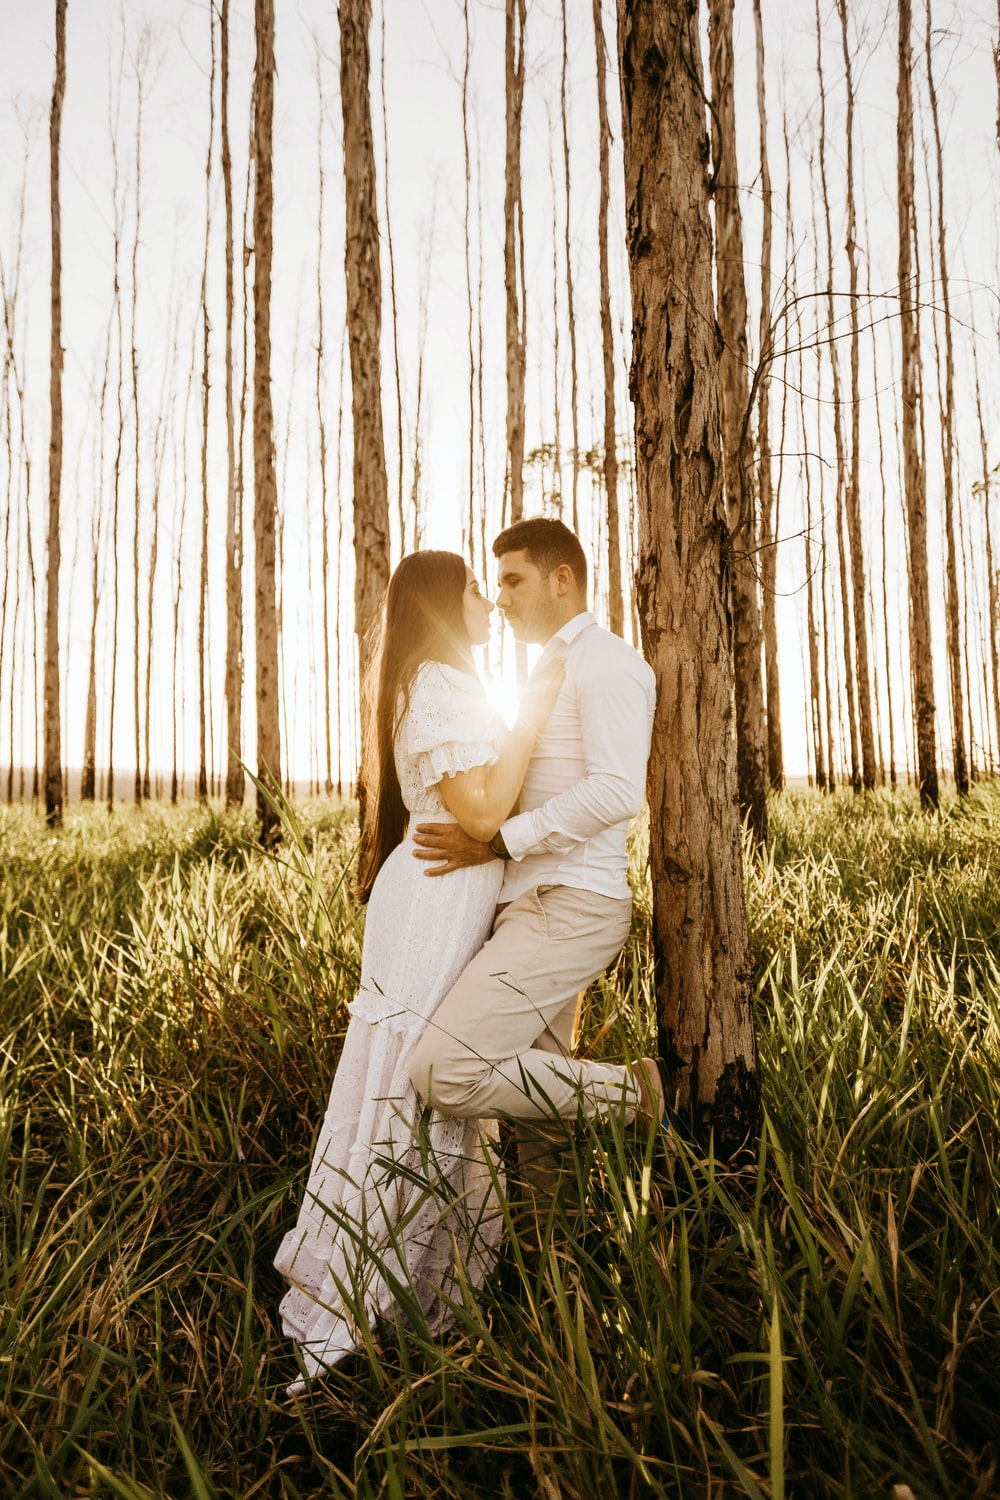 man and woman under trees